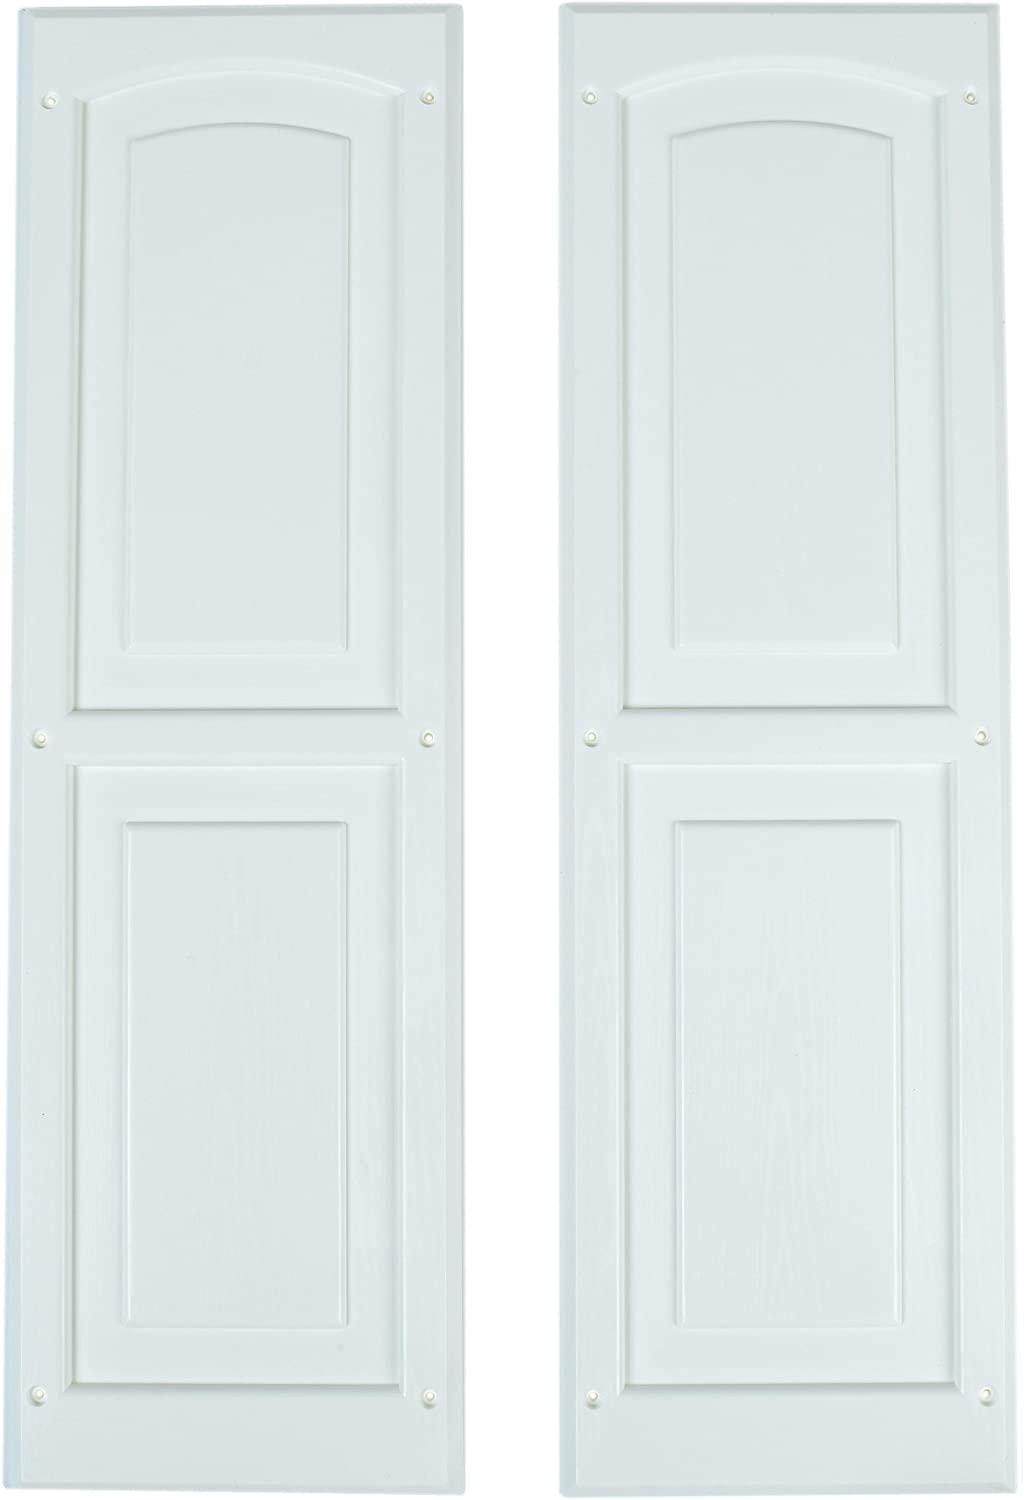 "Handy Home Products Window Shutter Pair, 9"" x 30.25"""